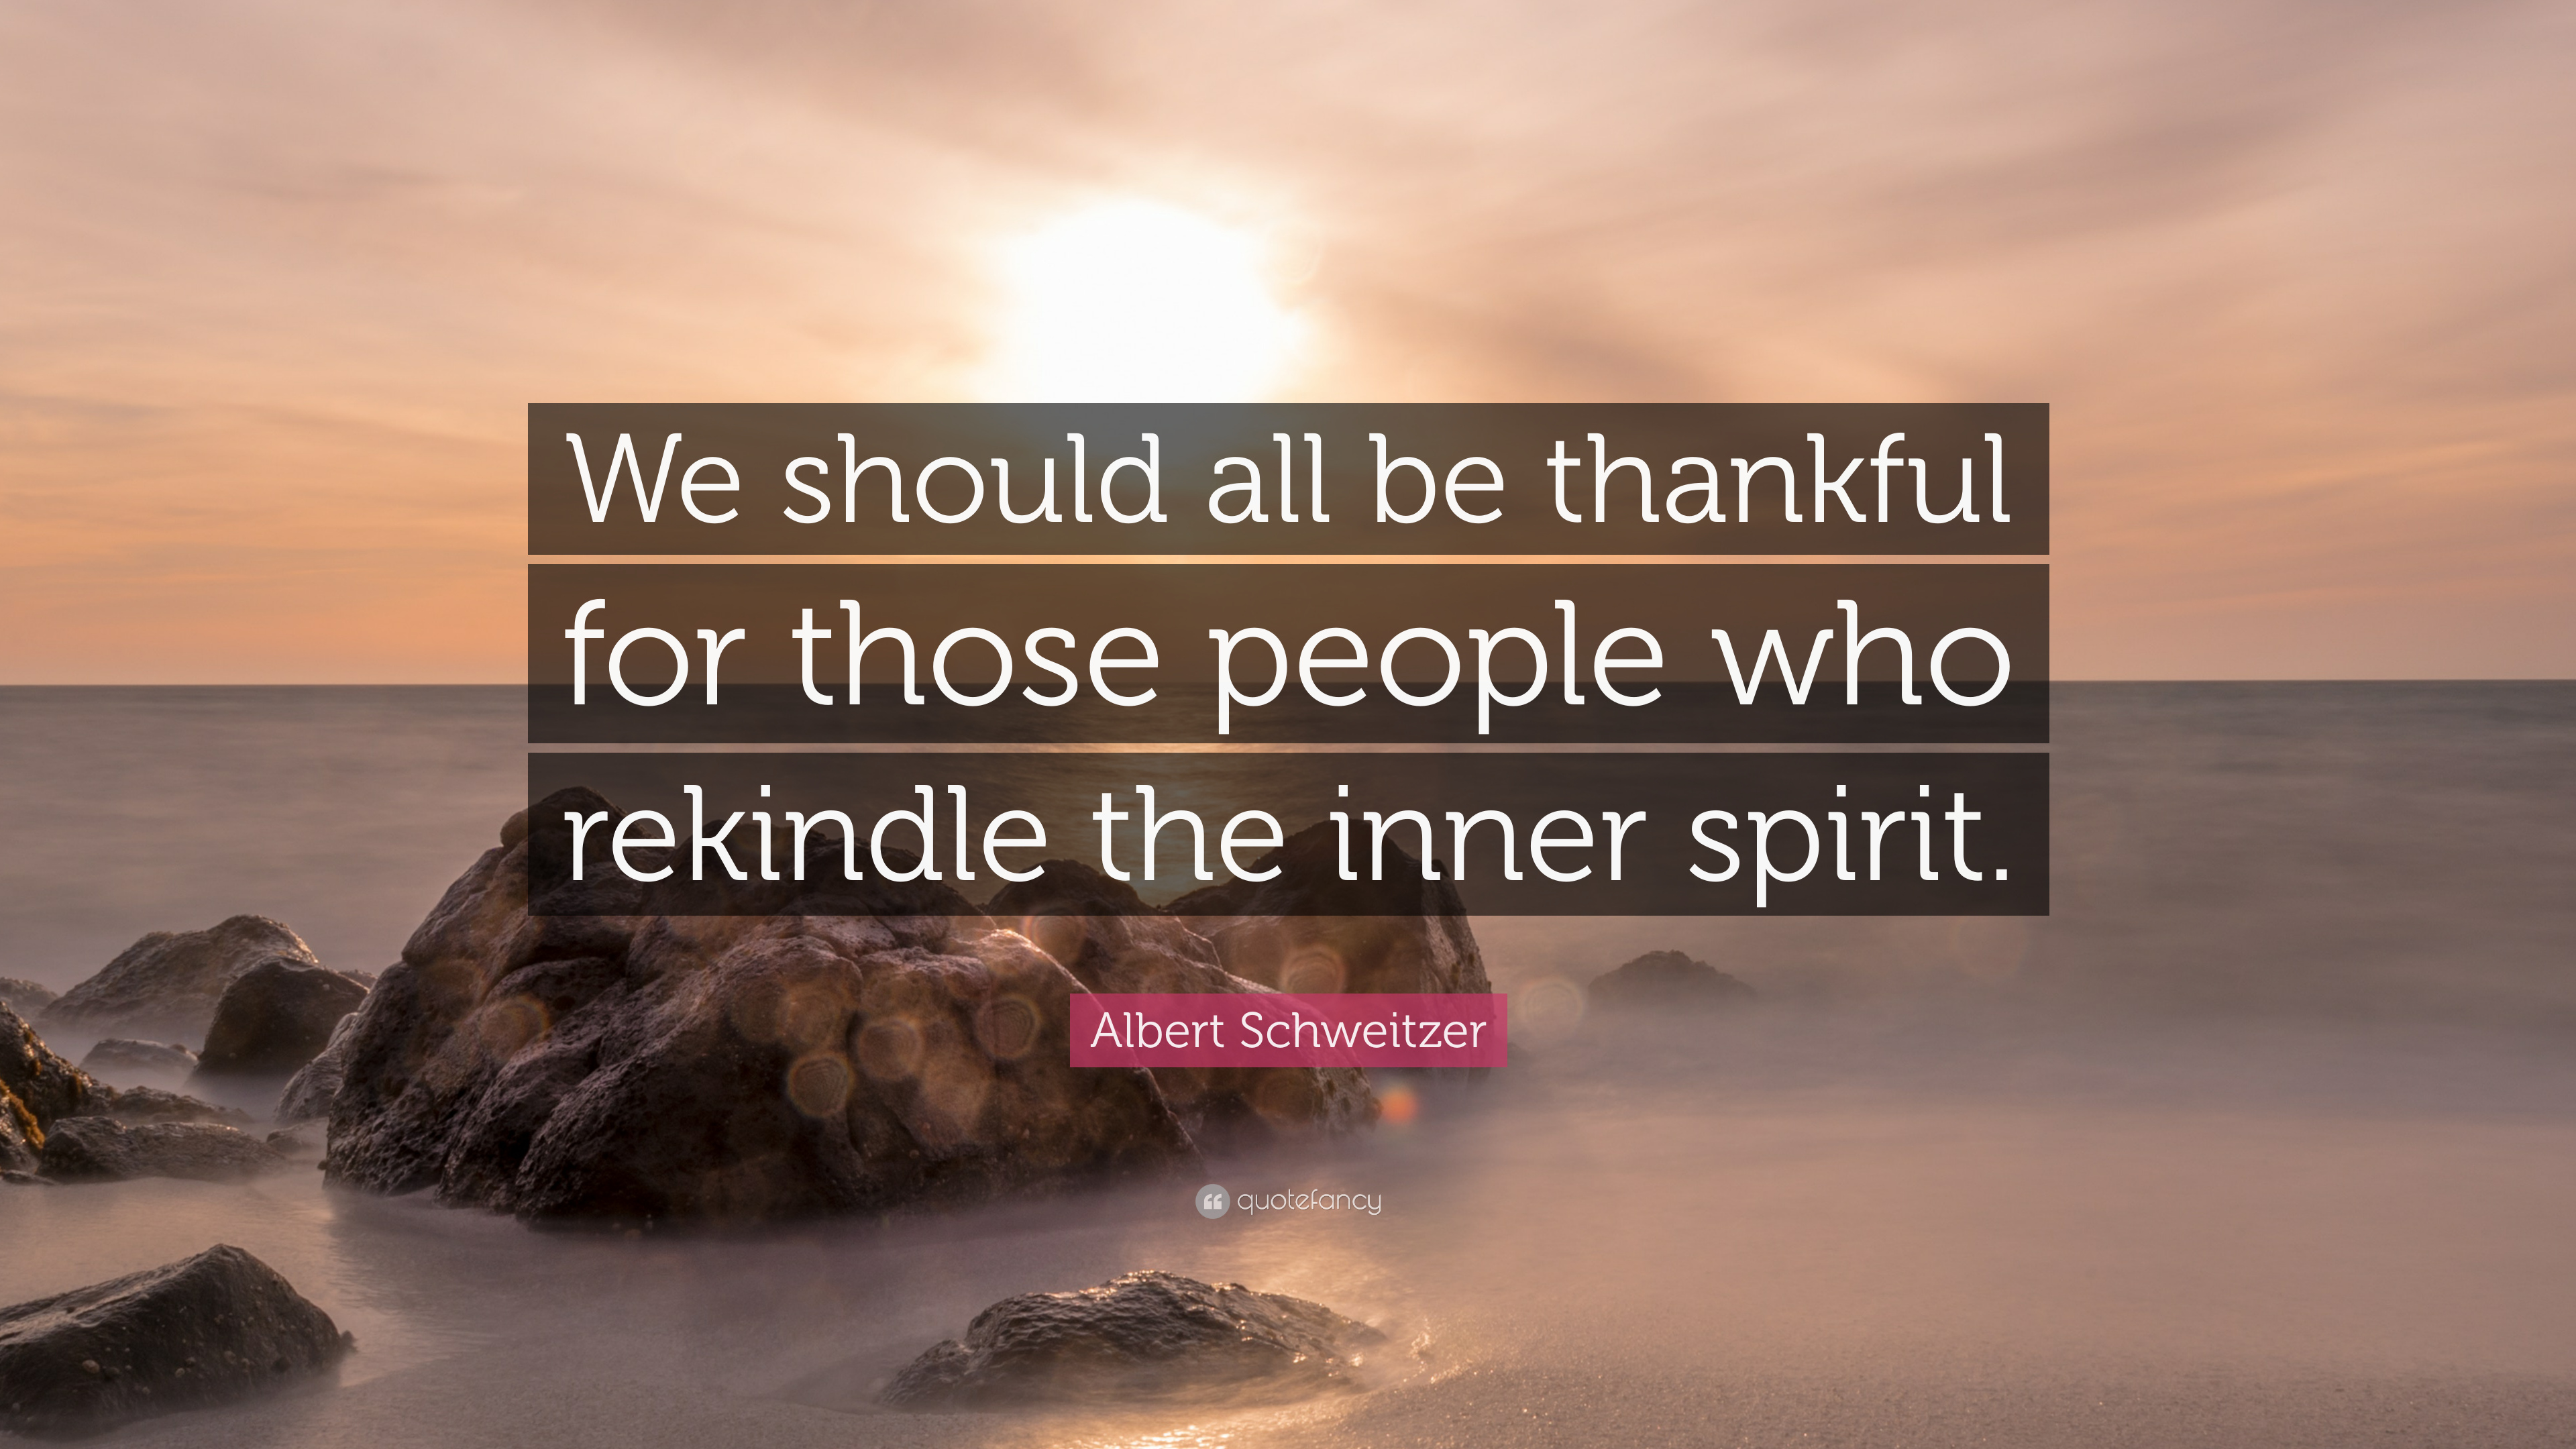 Be Thankful Quotes | Albert Schweitzer Quote We Should All Be Thankful For Those People